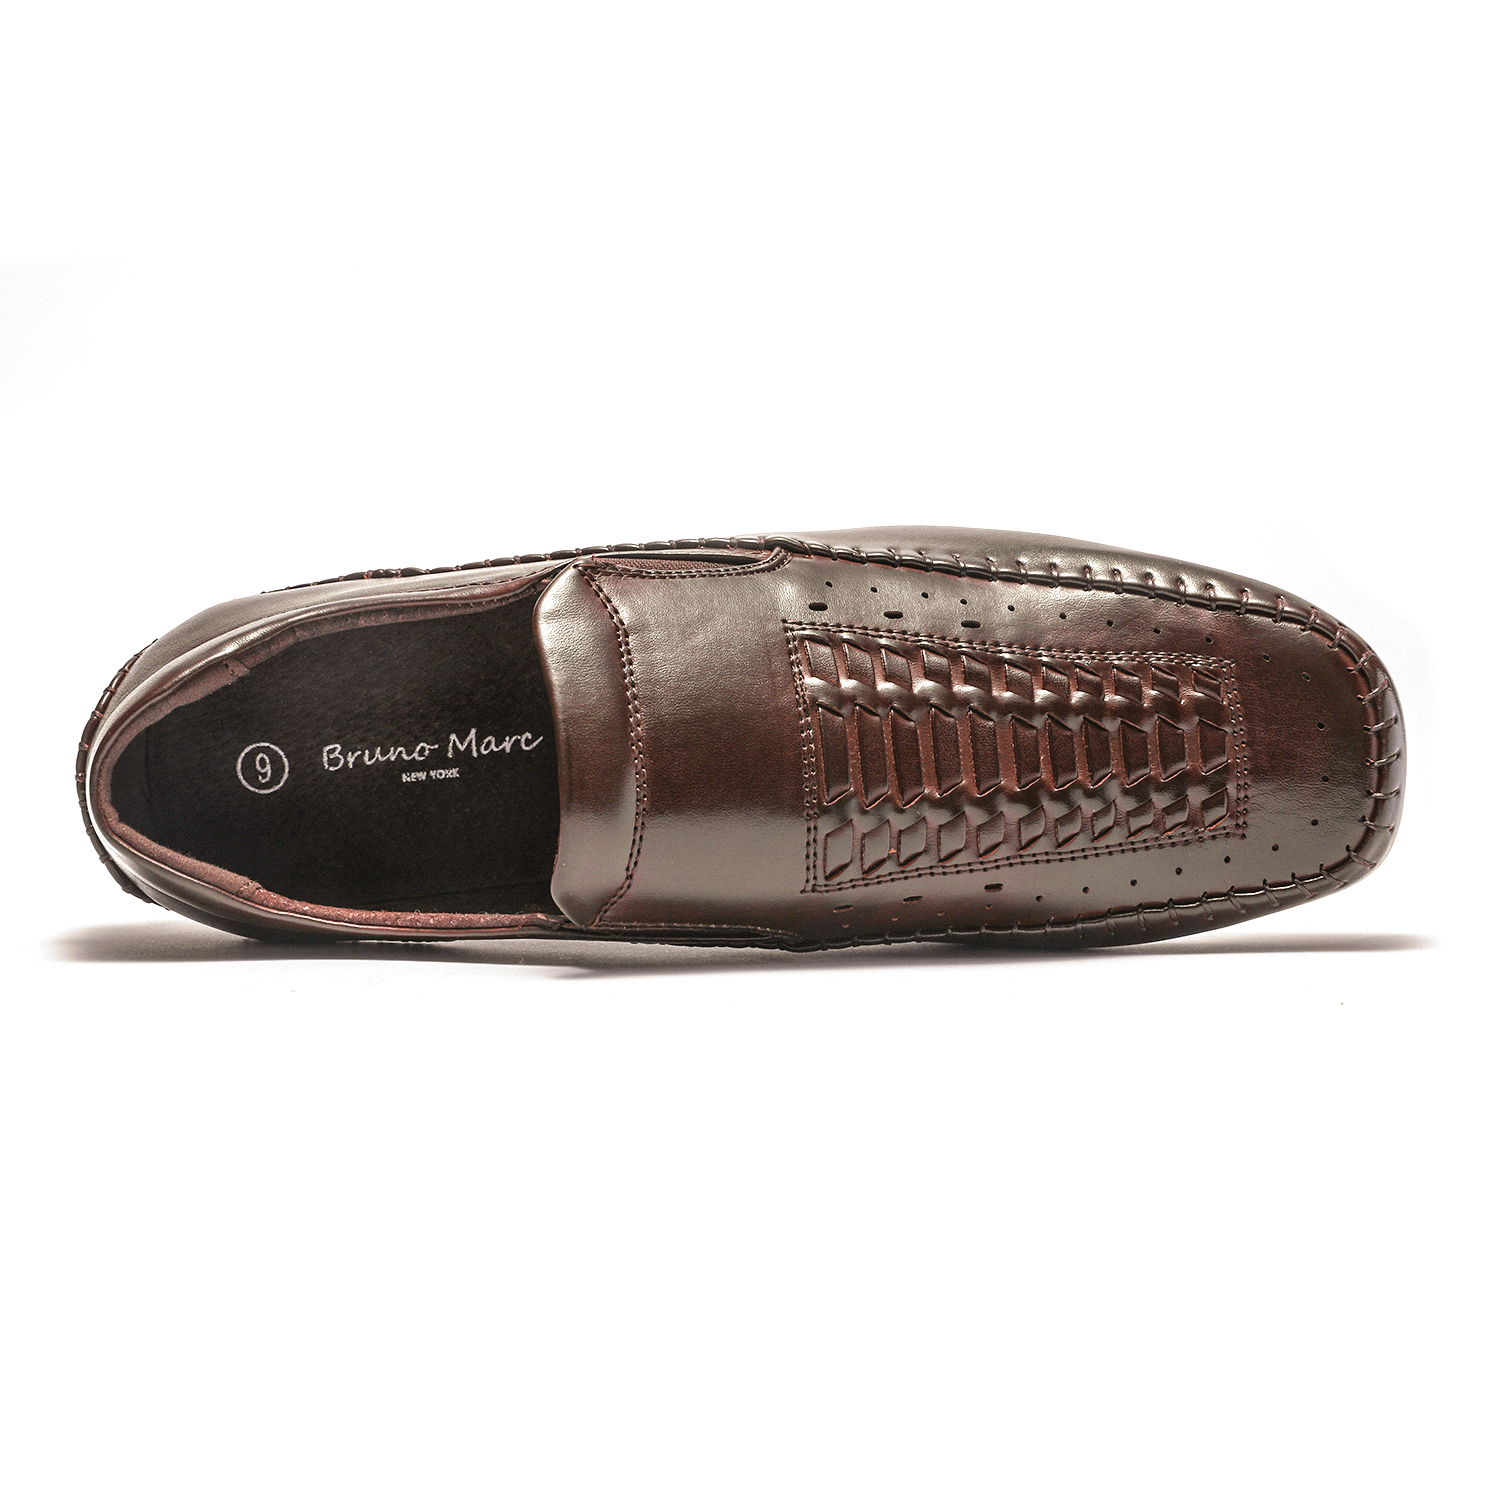 Bruno-Marc-Mens-Penny-Light-Loafers-Moccasins-Driving-Flats-Slip-On-Casual-Shoes thumbnail 31